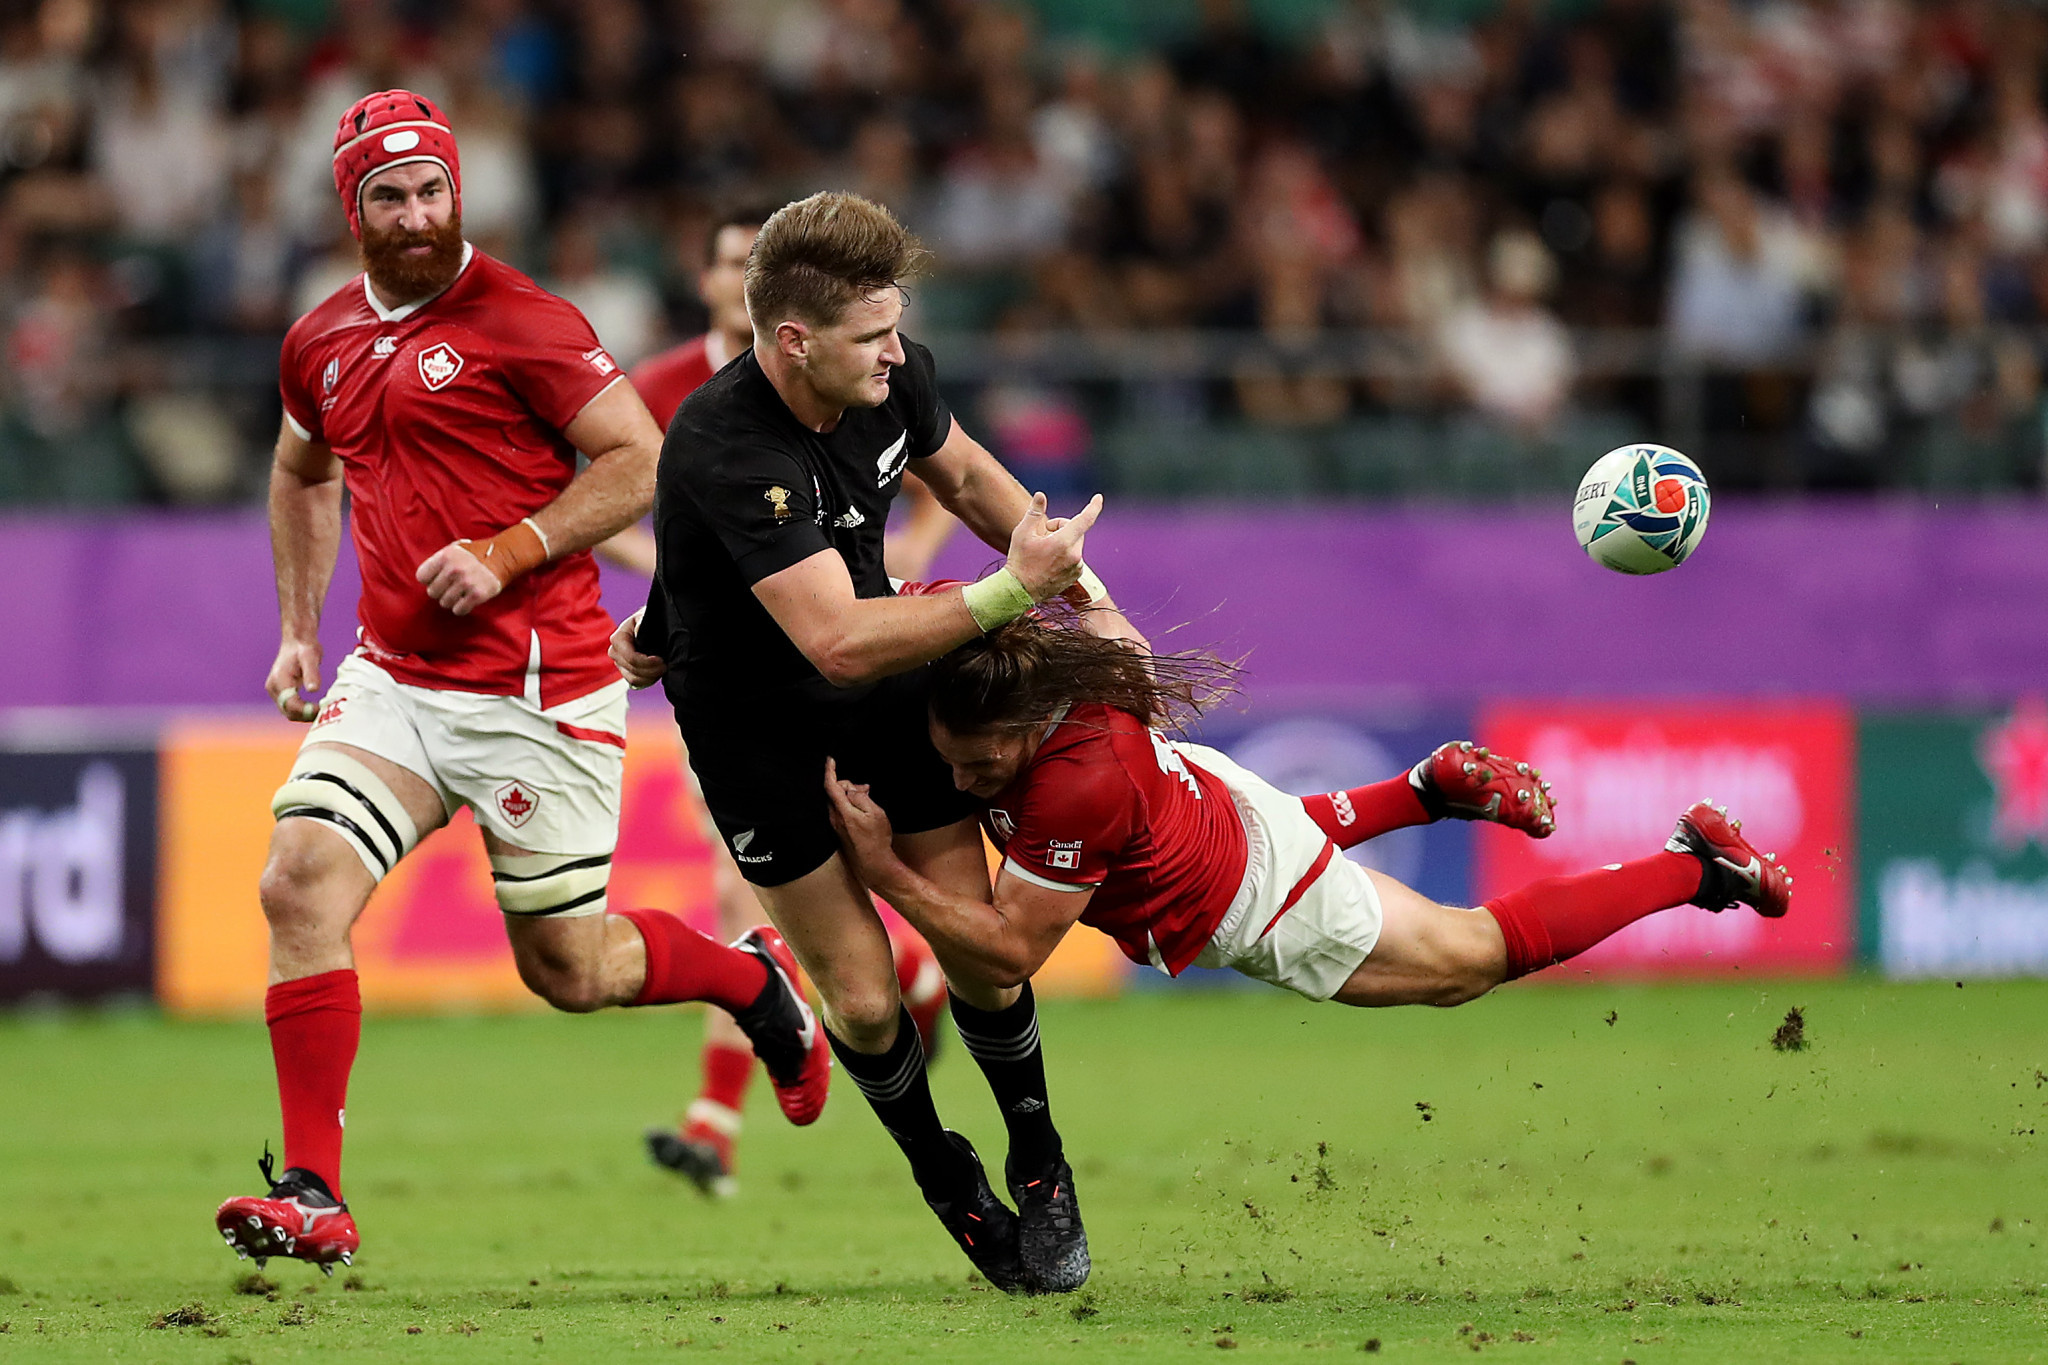 The All Blacks are simply brilliant at recycling possession, illustrated here by the always cool Jordie Barrett ©Getty Images